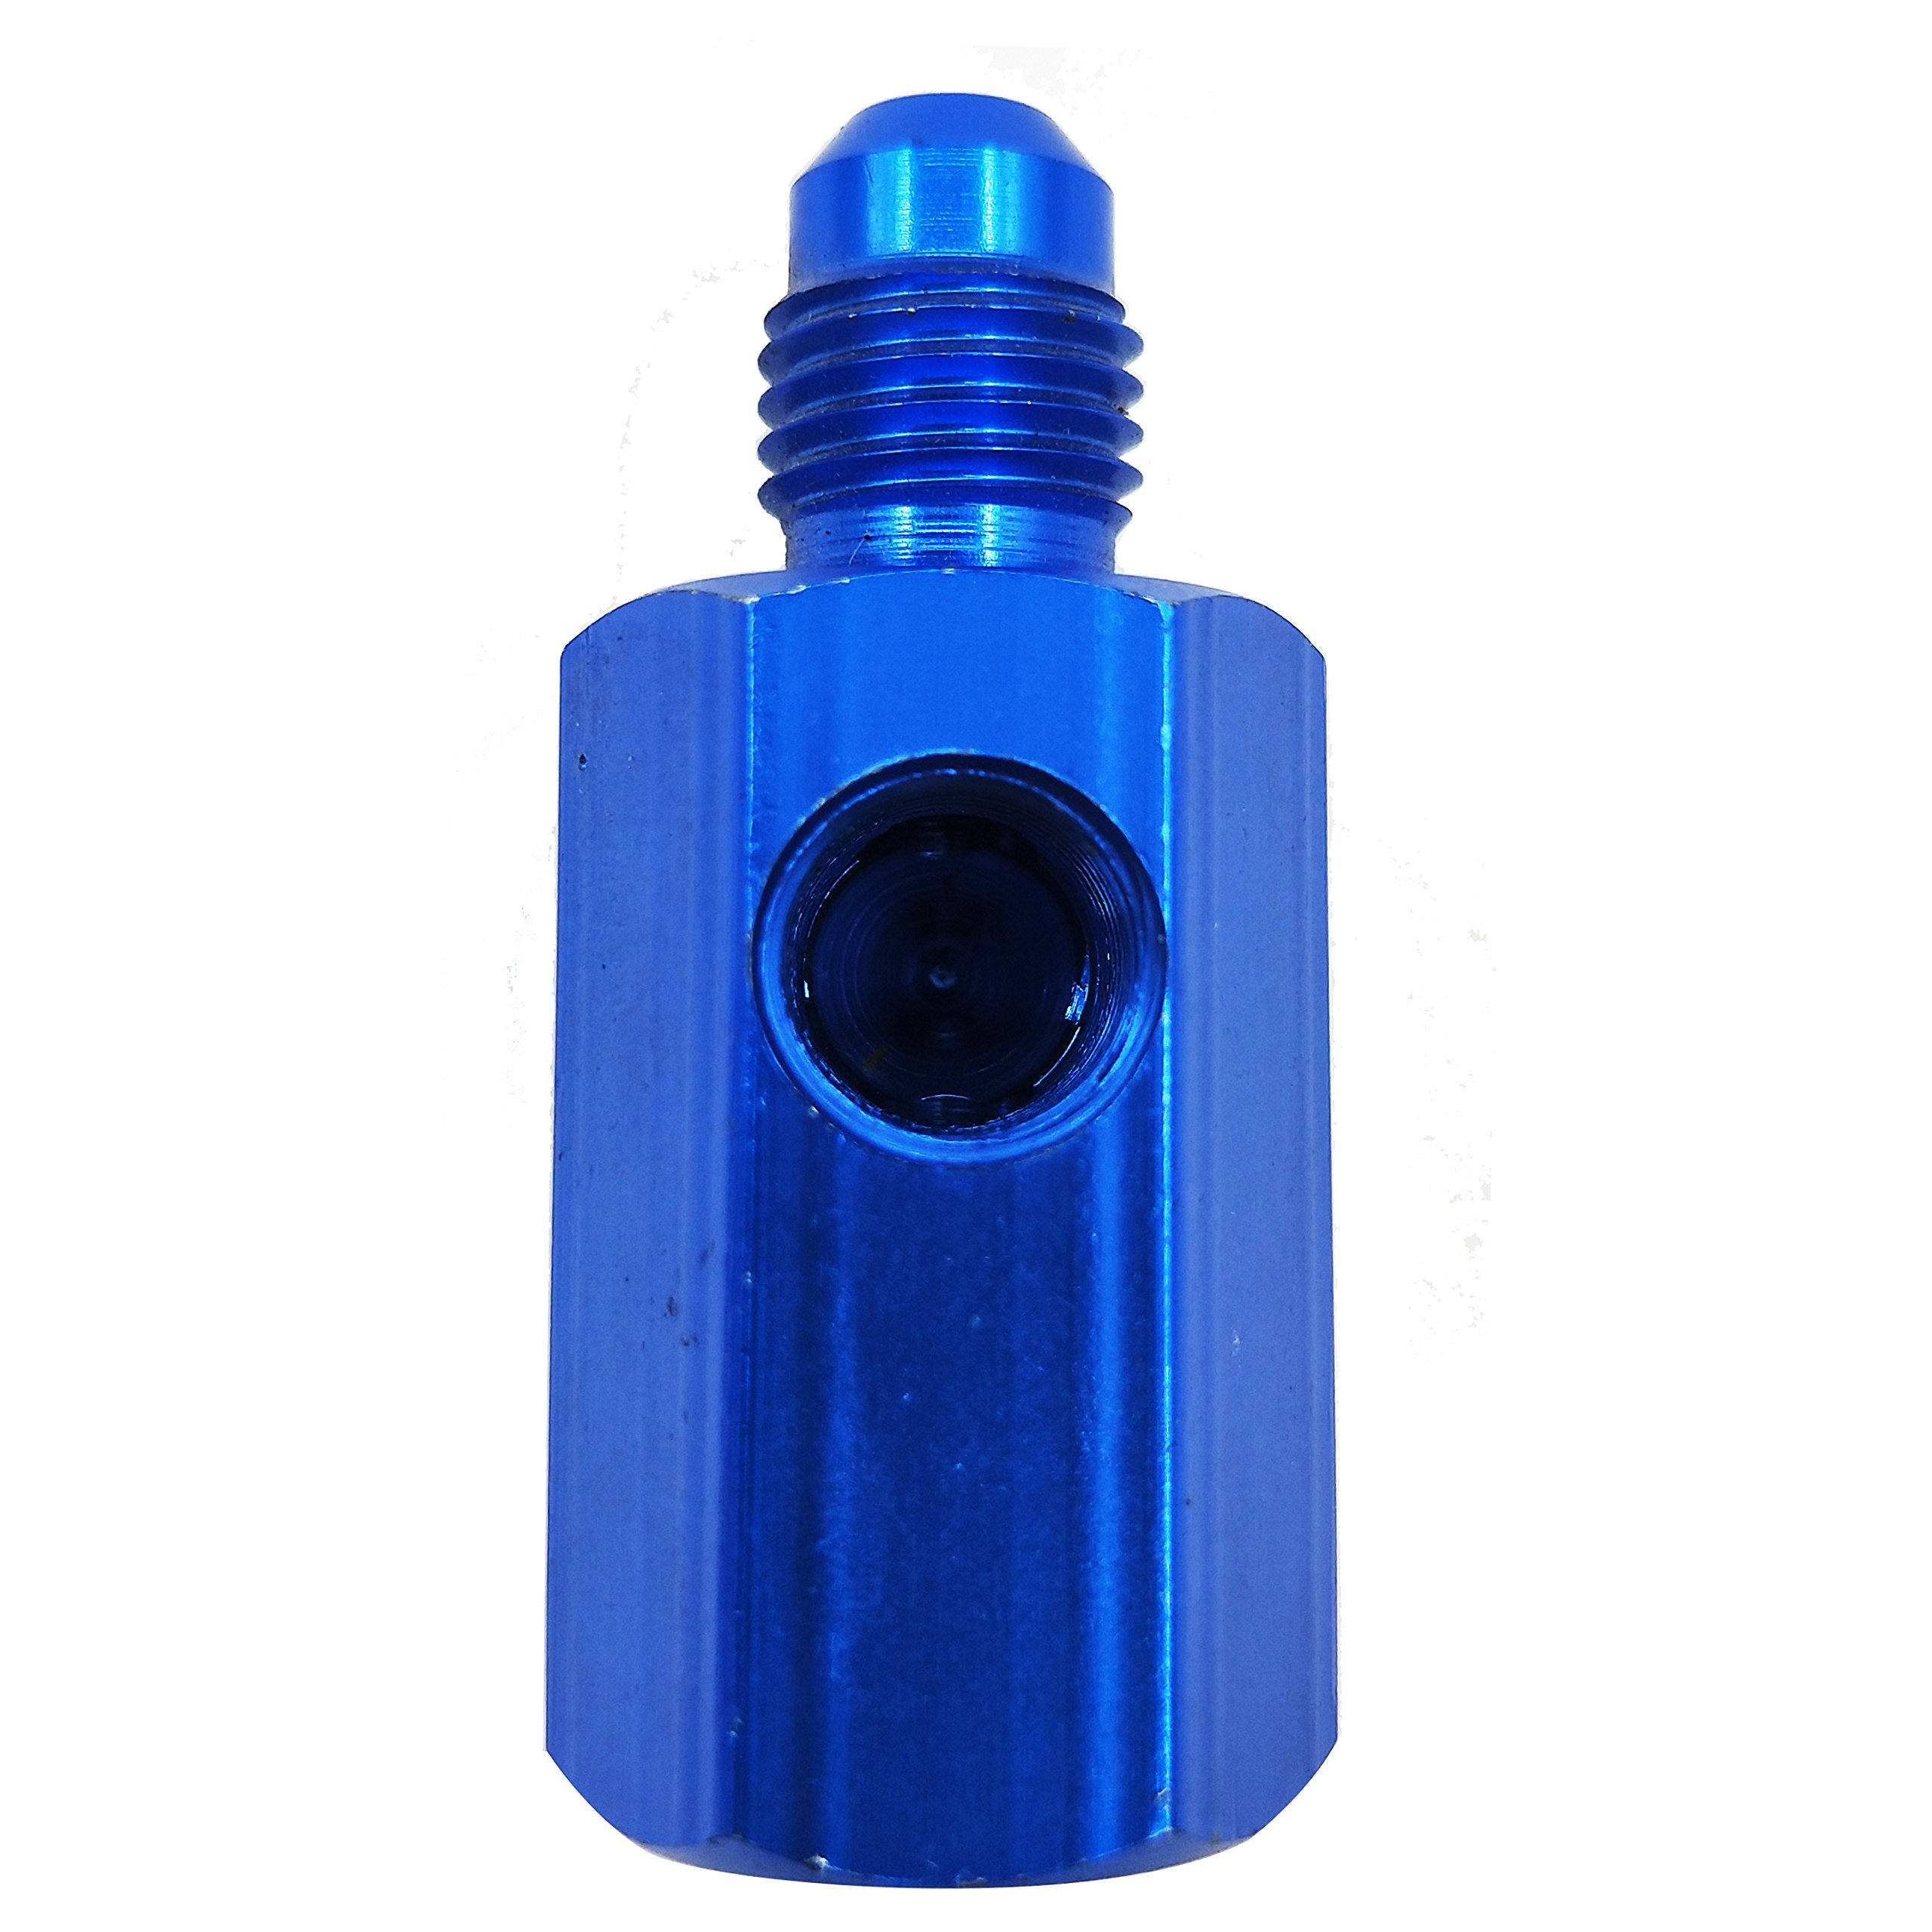 Dracarys Nitrous 4 AN Inline Adapter Work For NOS Or NX (Blue, 4AN)